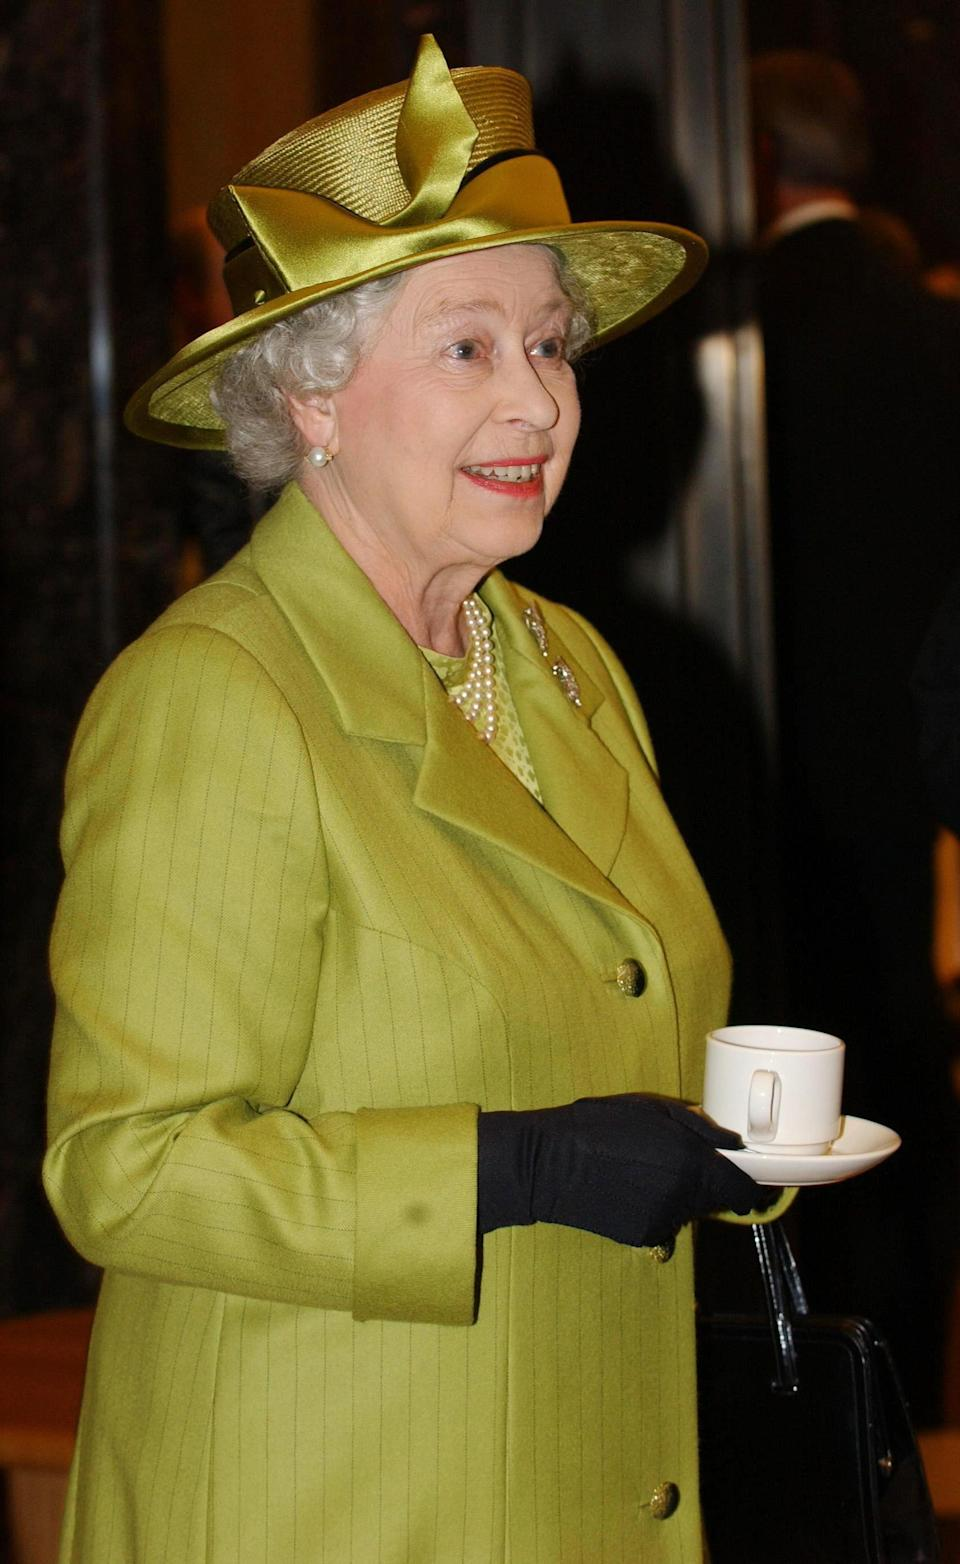 Britain's Queen Elizabeth II during her visit to the Ministry of Defence in Whitehall, London. The Queen was opening the  352 million refurbishment of the MoD's main building in London